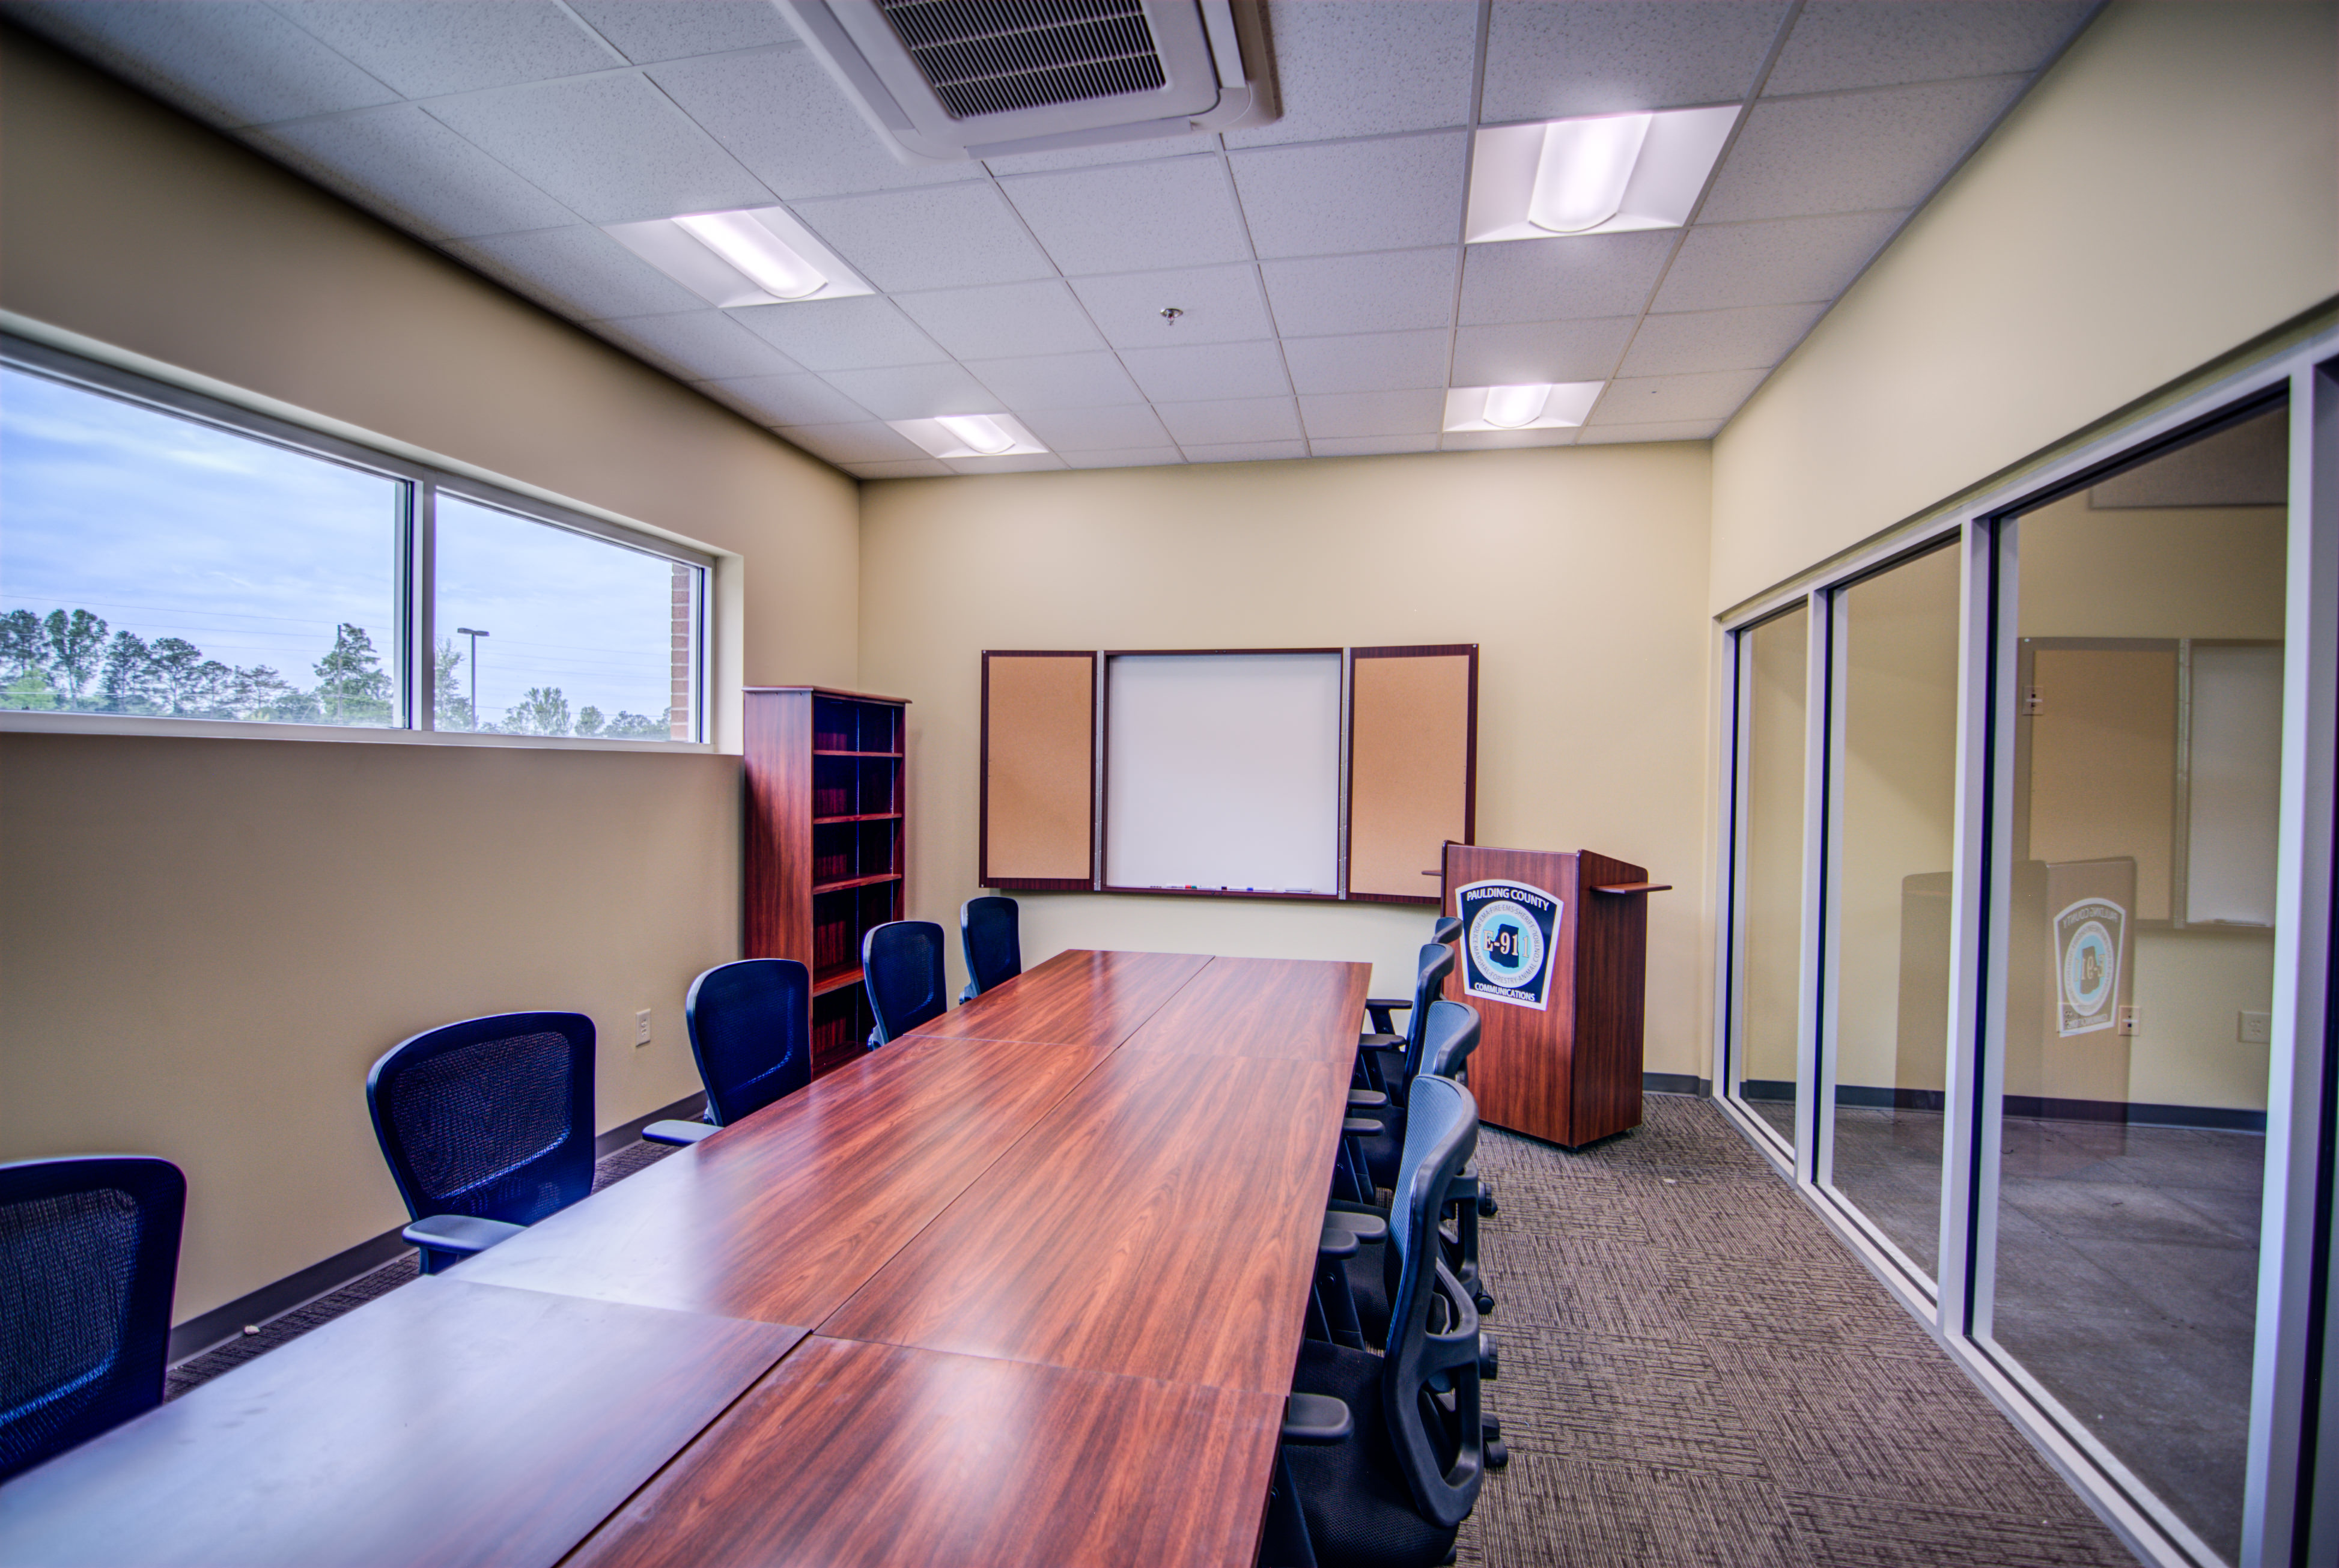 Paulding County 911 E Operations Center | Conference Room | Dallas, GA | Cooper & Company General Contractors